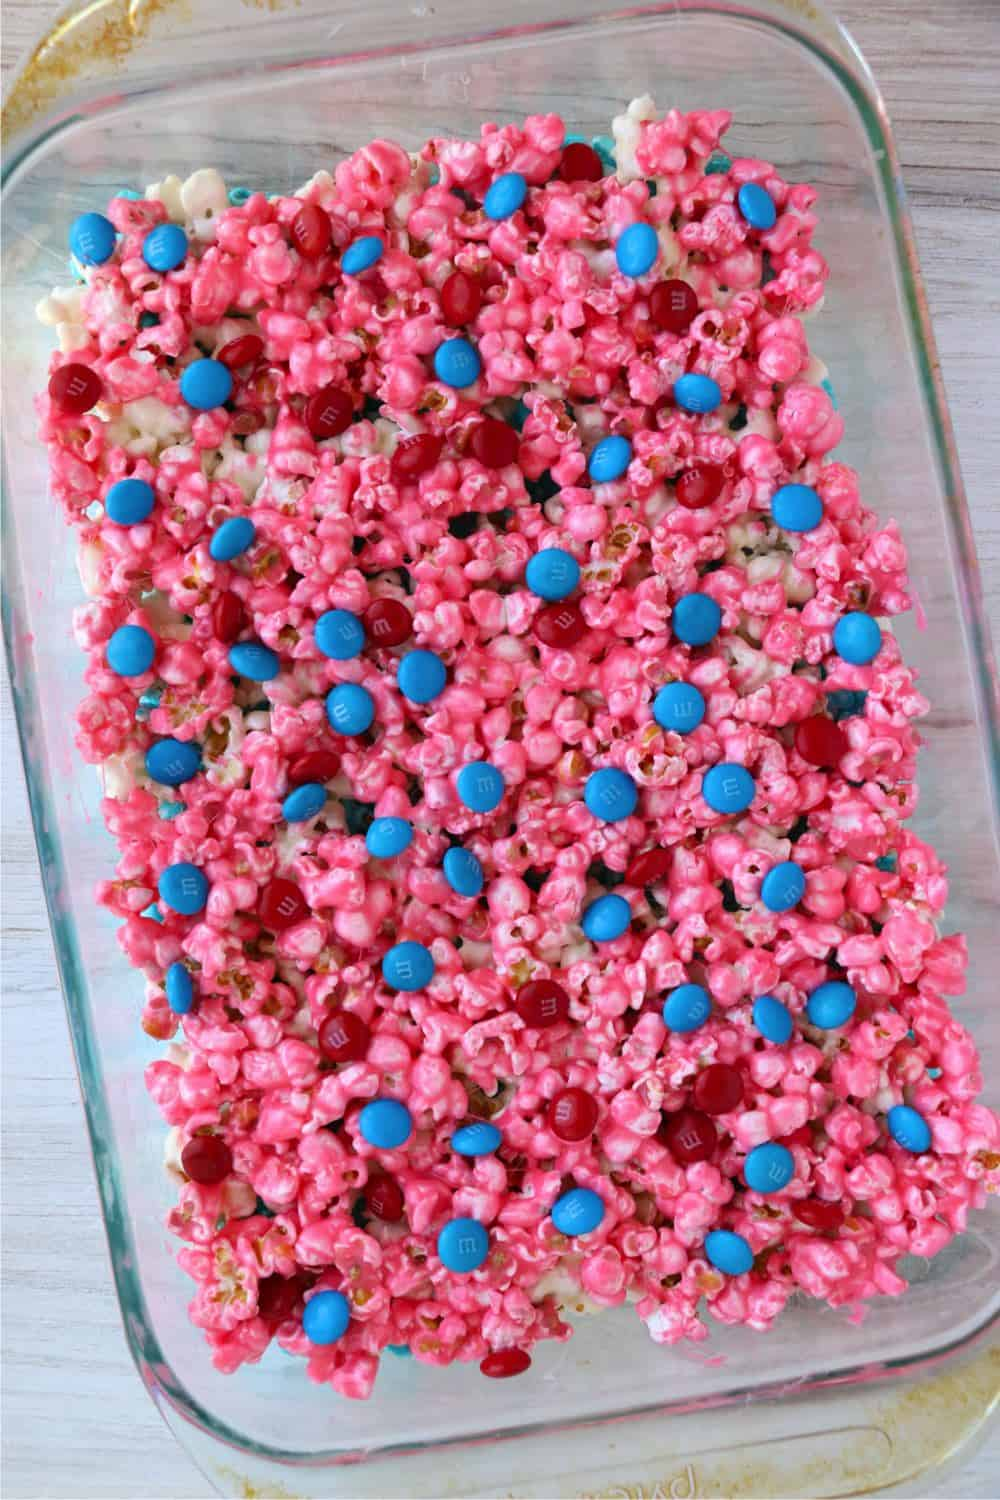 A pan of USA marshmallow cake with red and blue M&Ms sprinkled on top